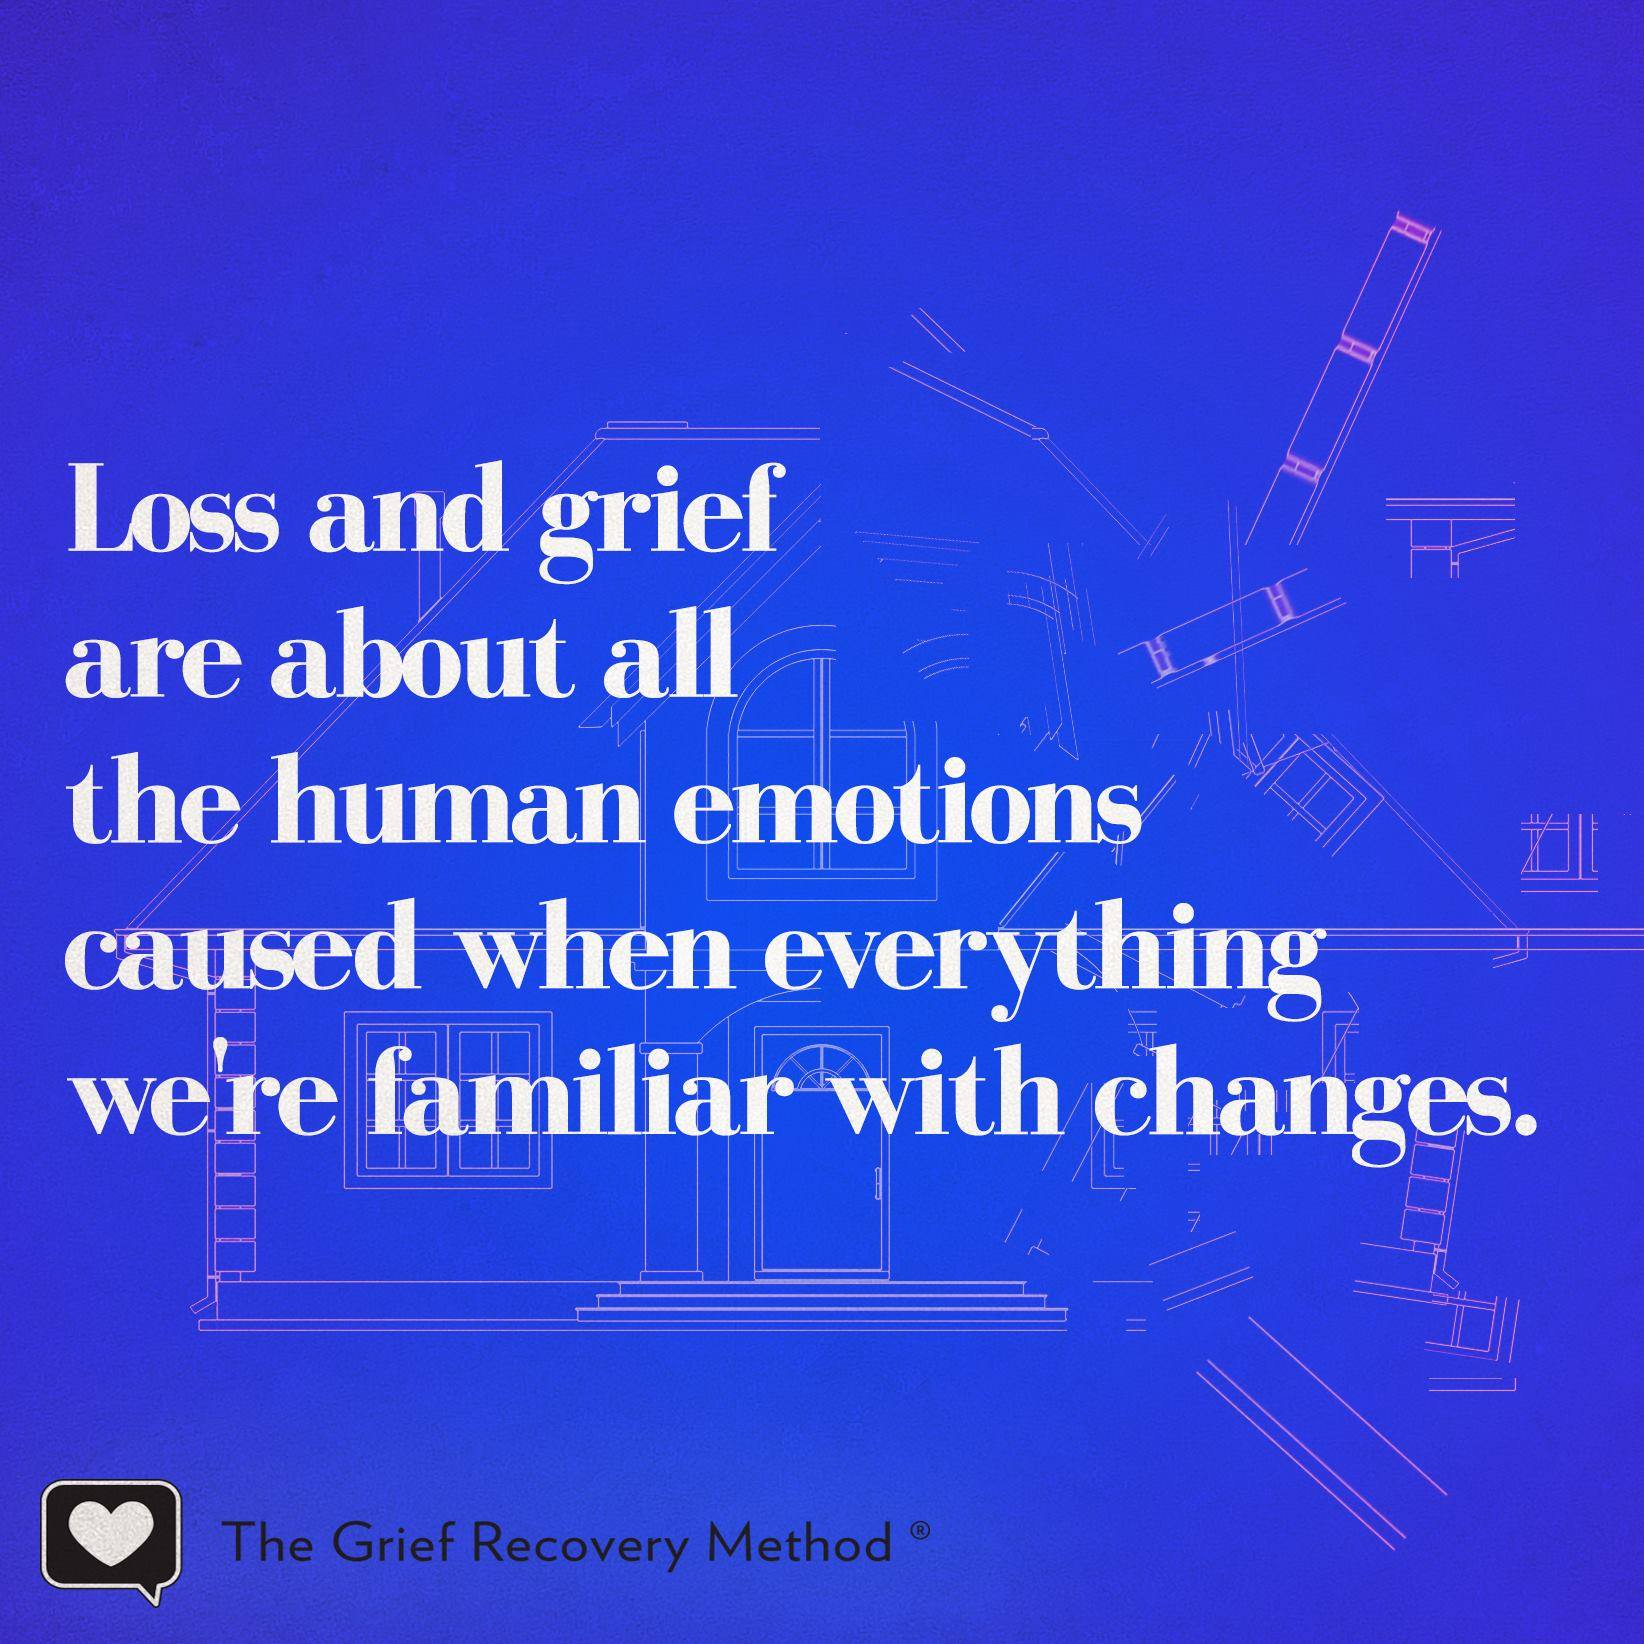 grief is normal and natural reaction to the end of or change in familiar pattern of behavior